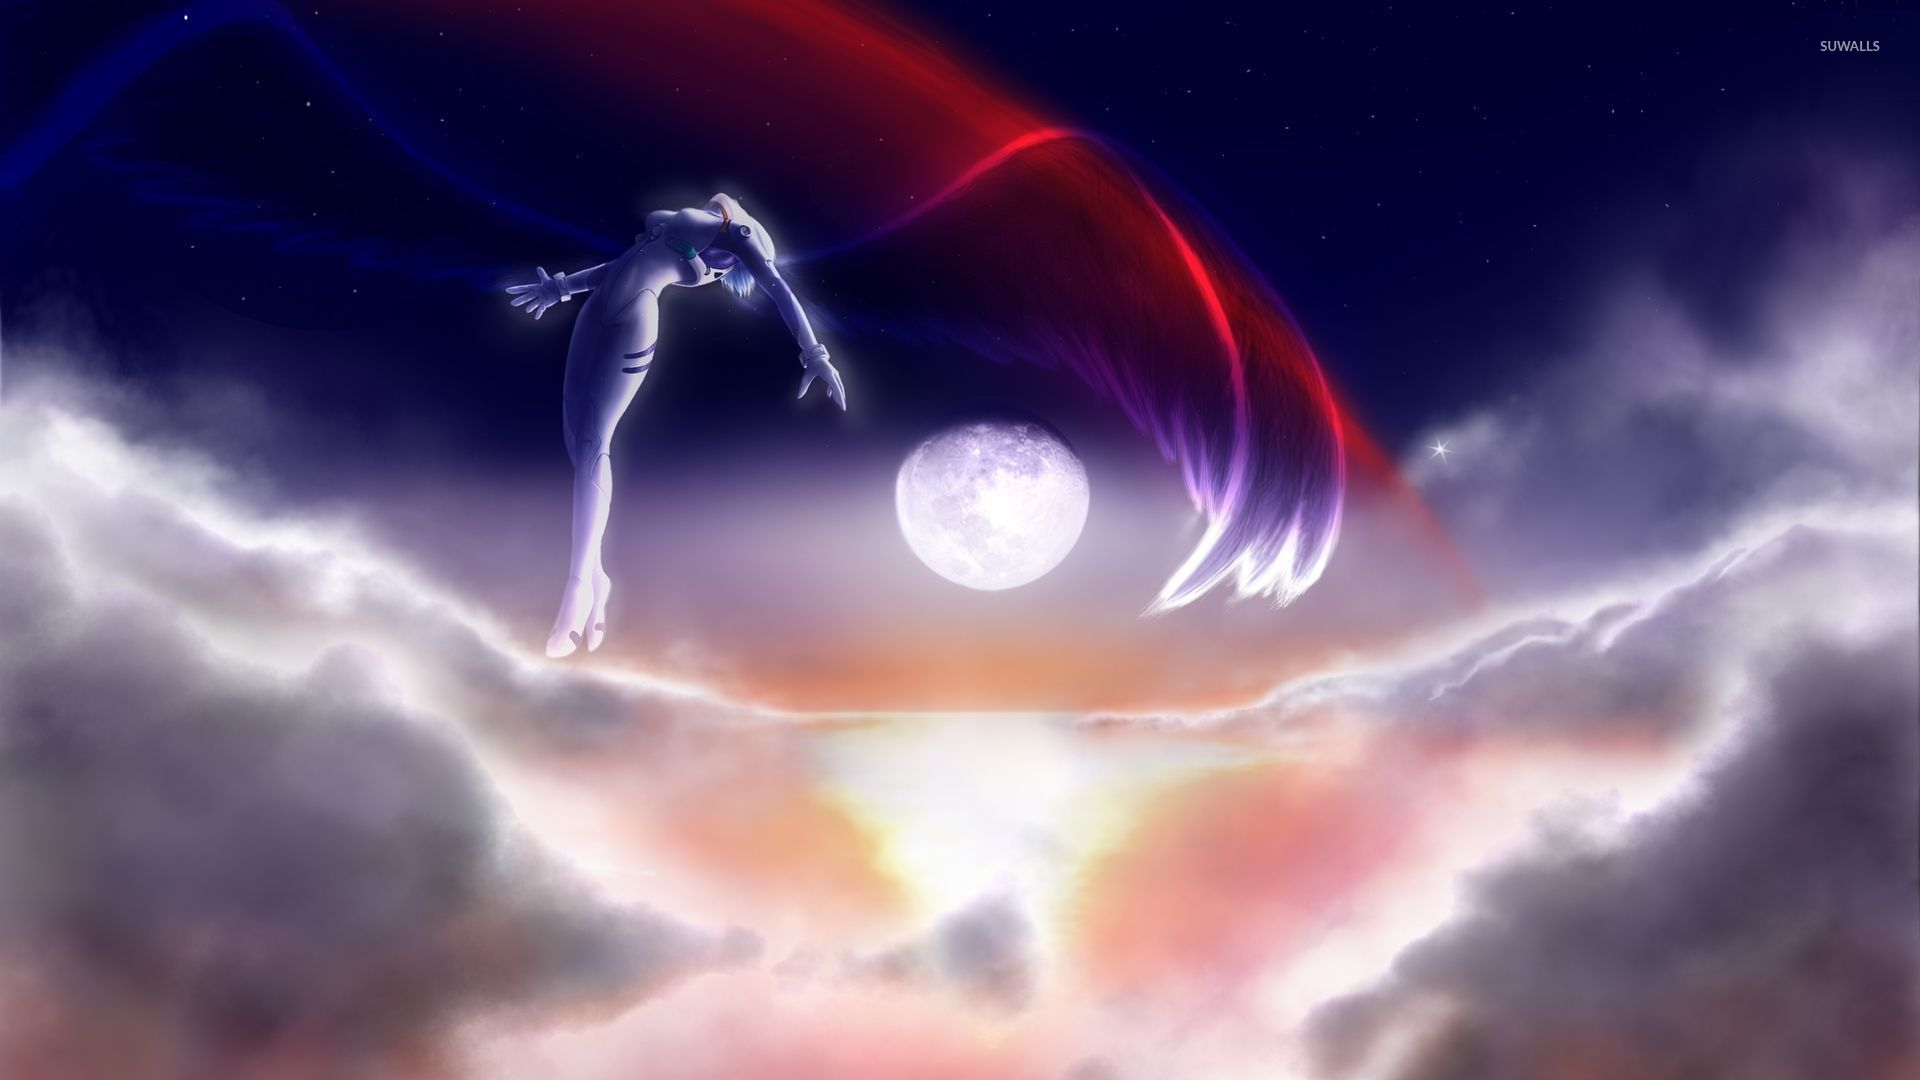 Neon Genesis Evangelion Angel In The Sky Wallpaper